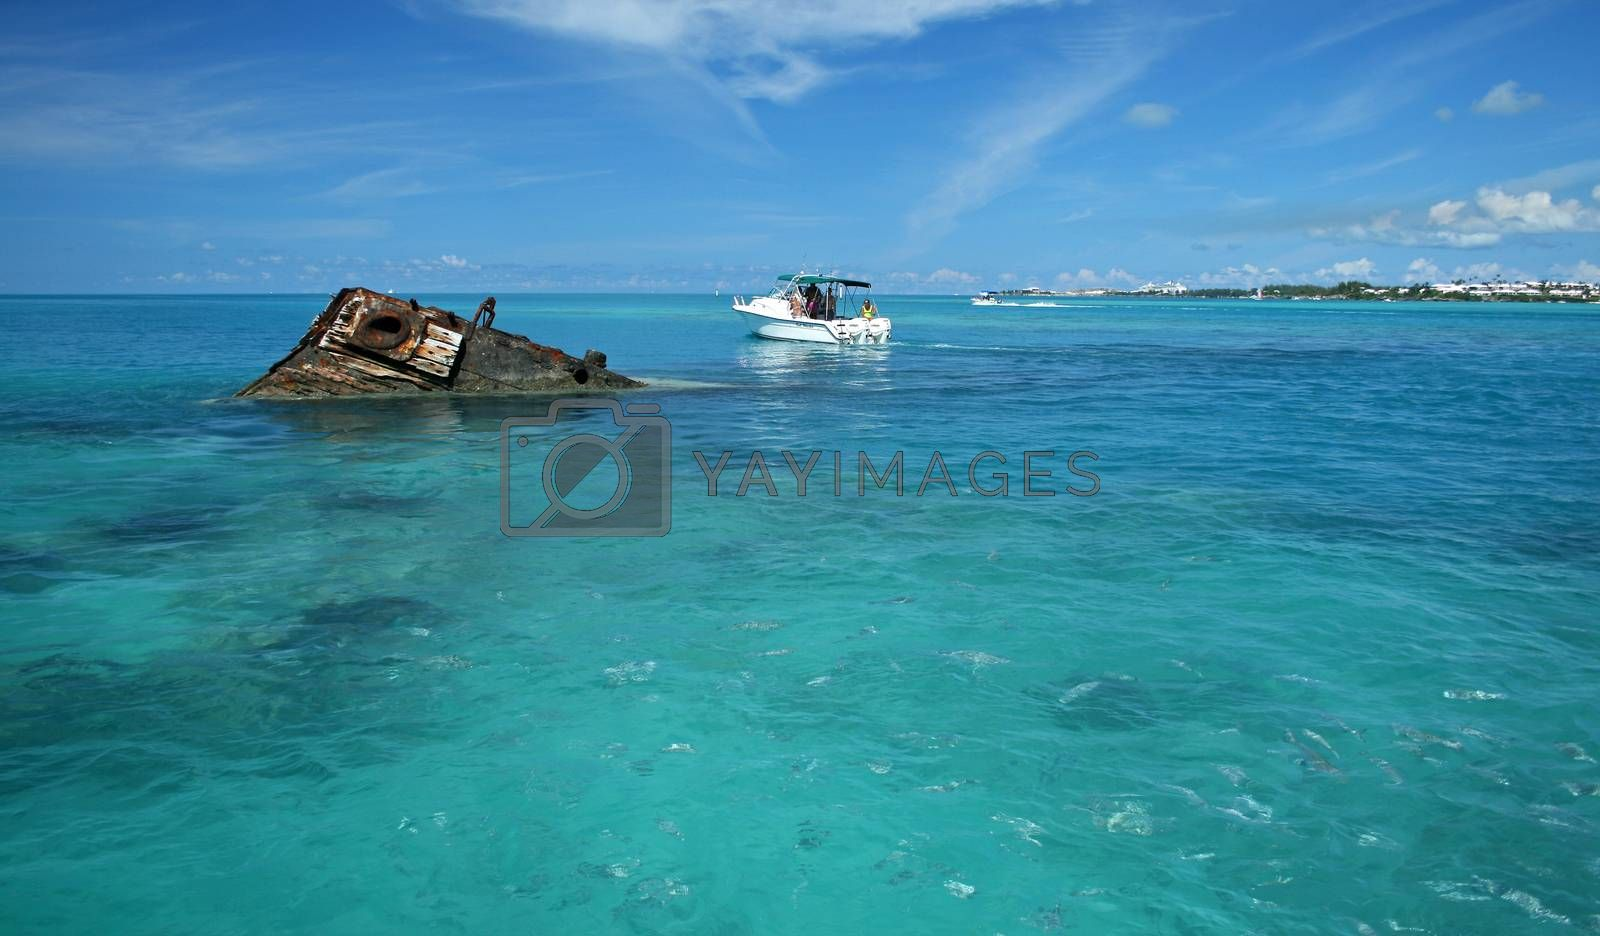 A ship wreck in a tropical sea, with a pleasure boat floating close by